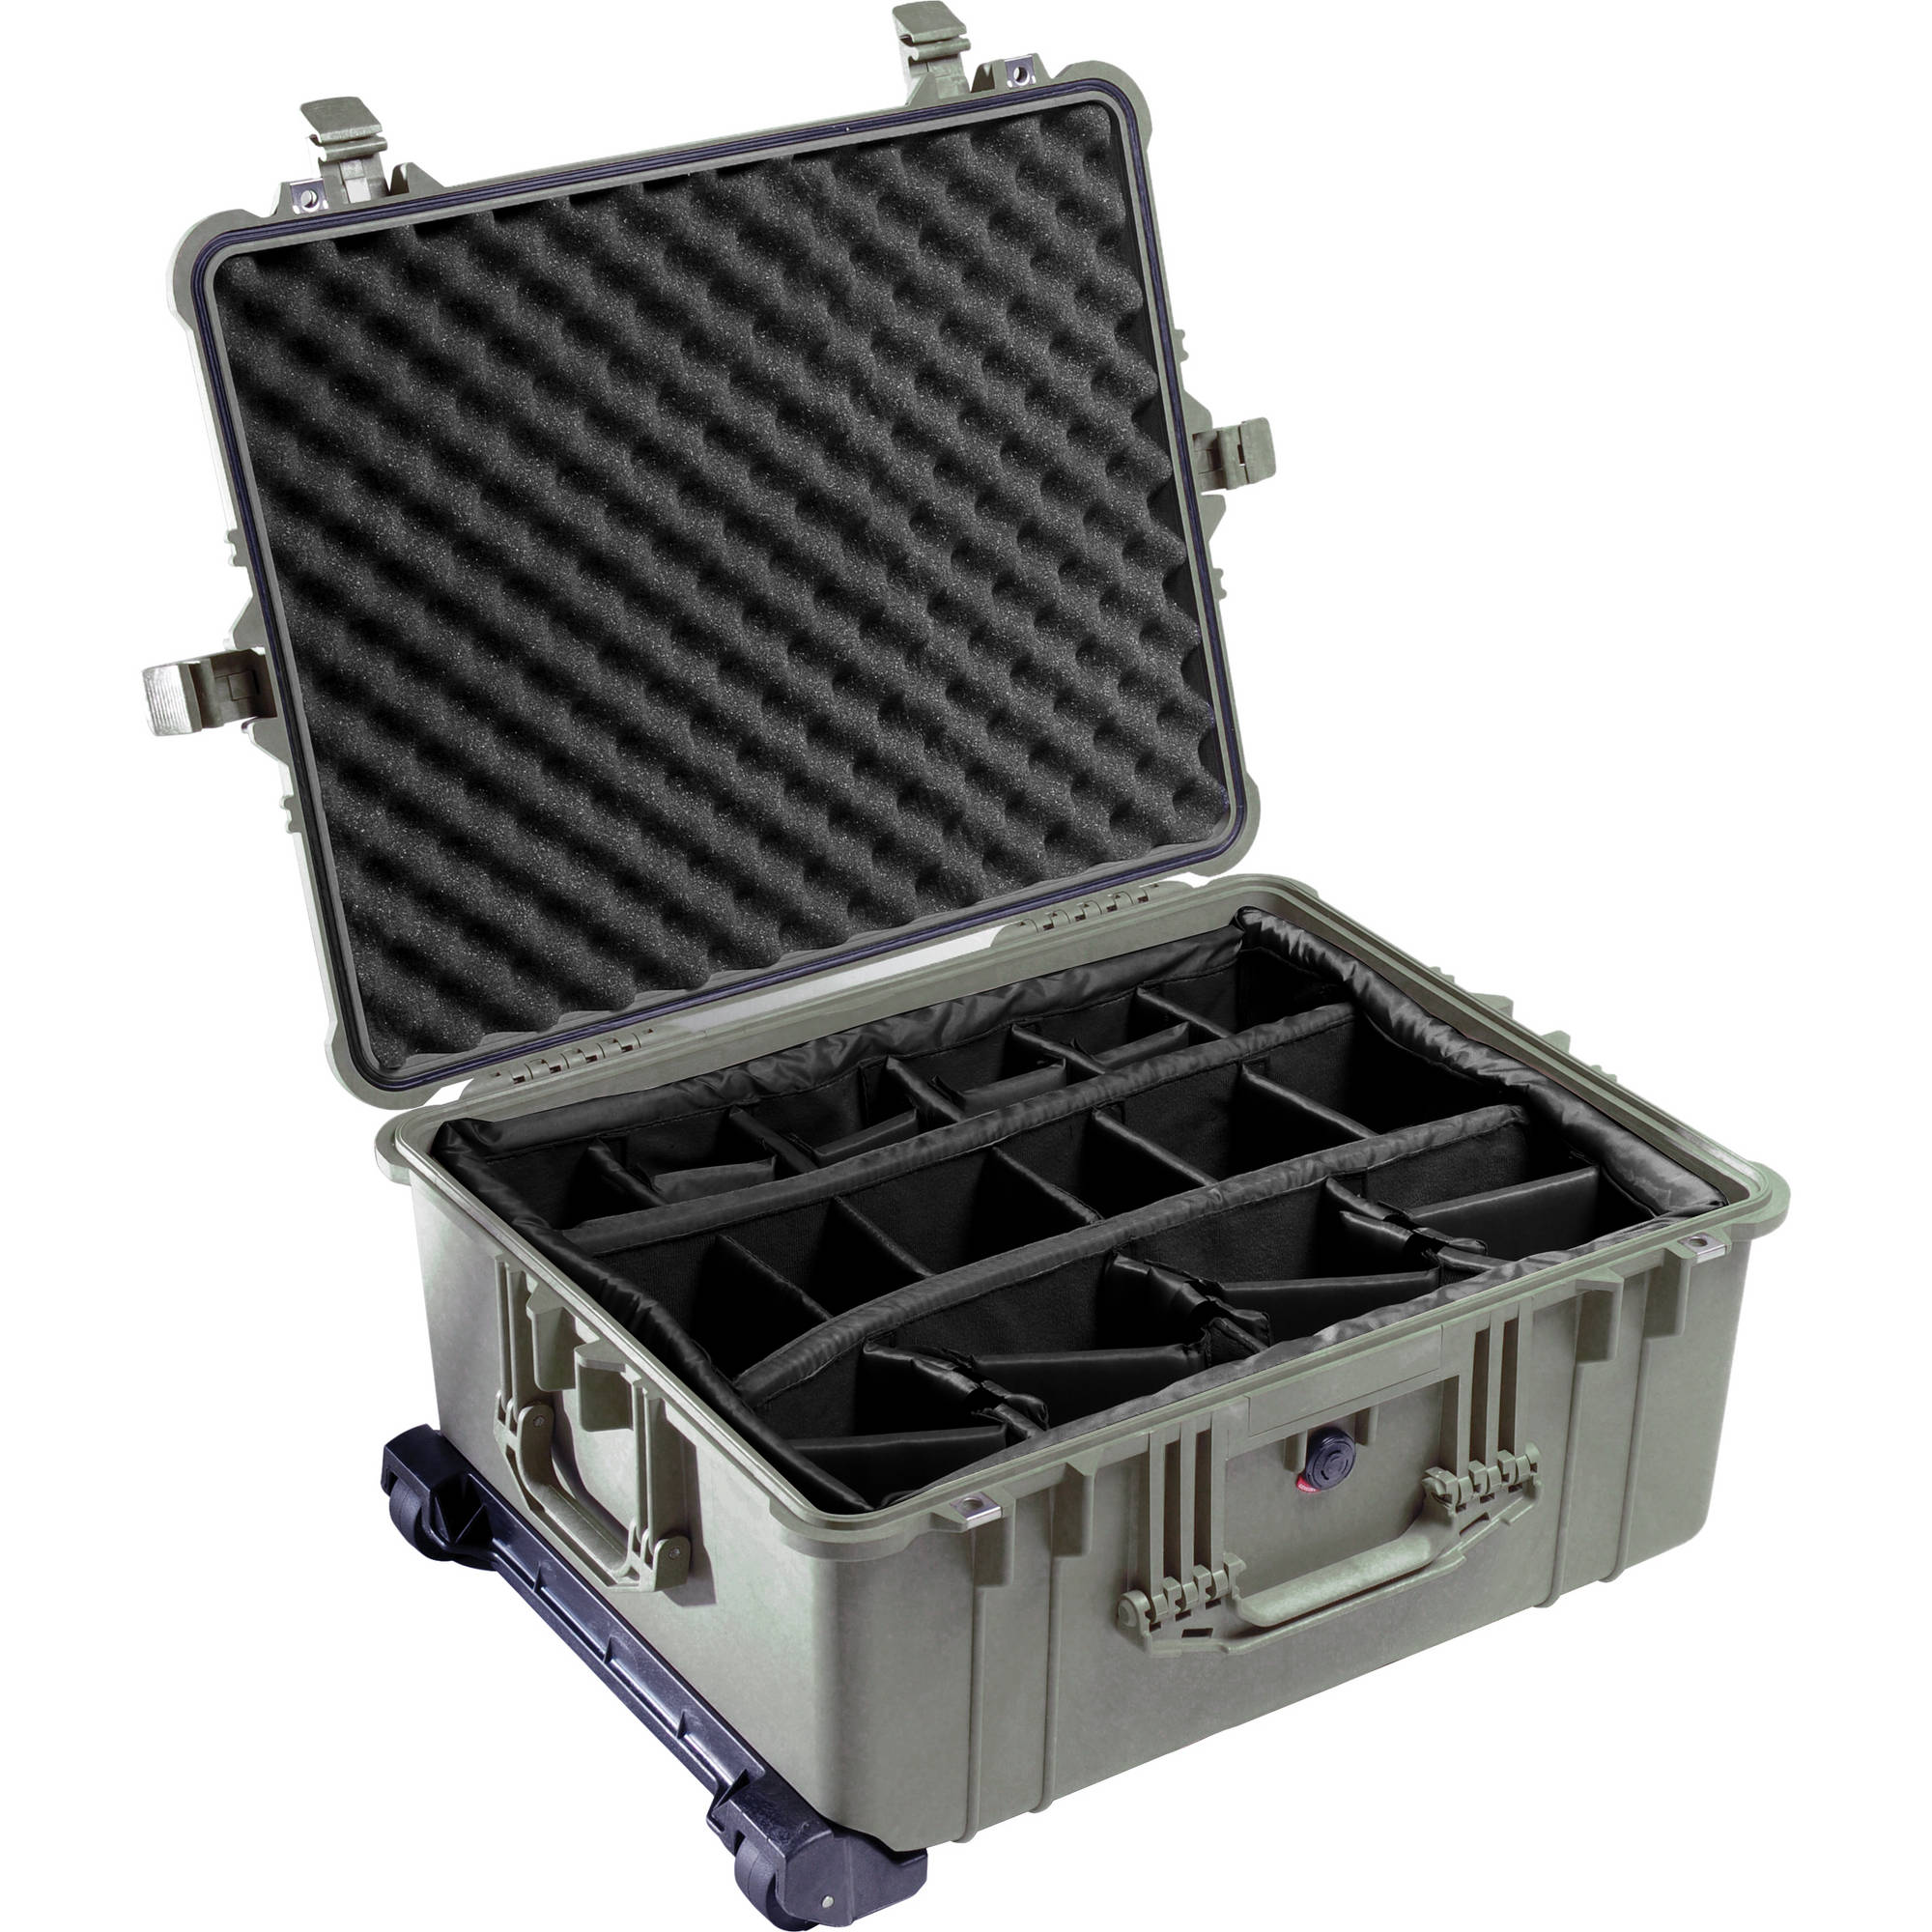 6127e9f41 Pelican 1614 Waterproof 1610 Case with Dividers 1610-024-110 B&H